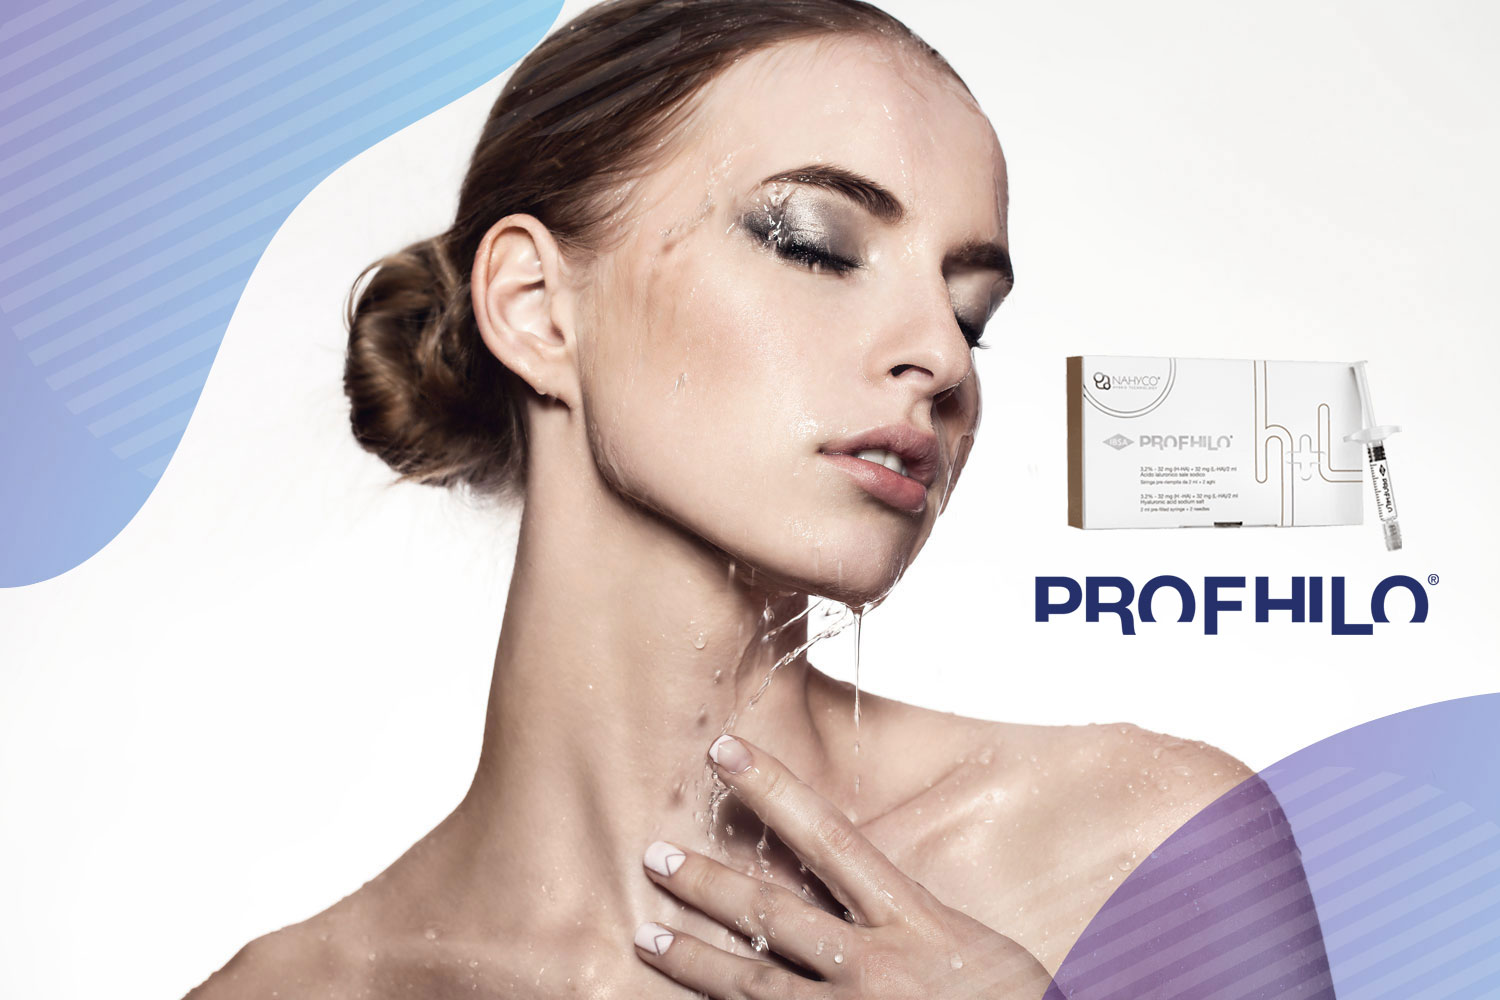 Profhilo Injectable Singapore